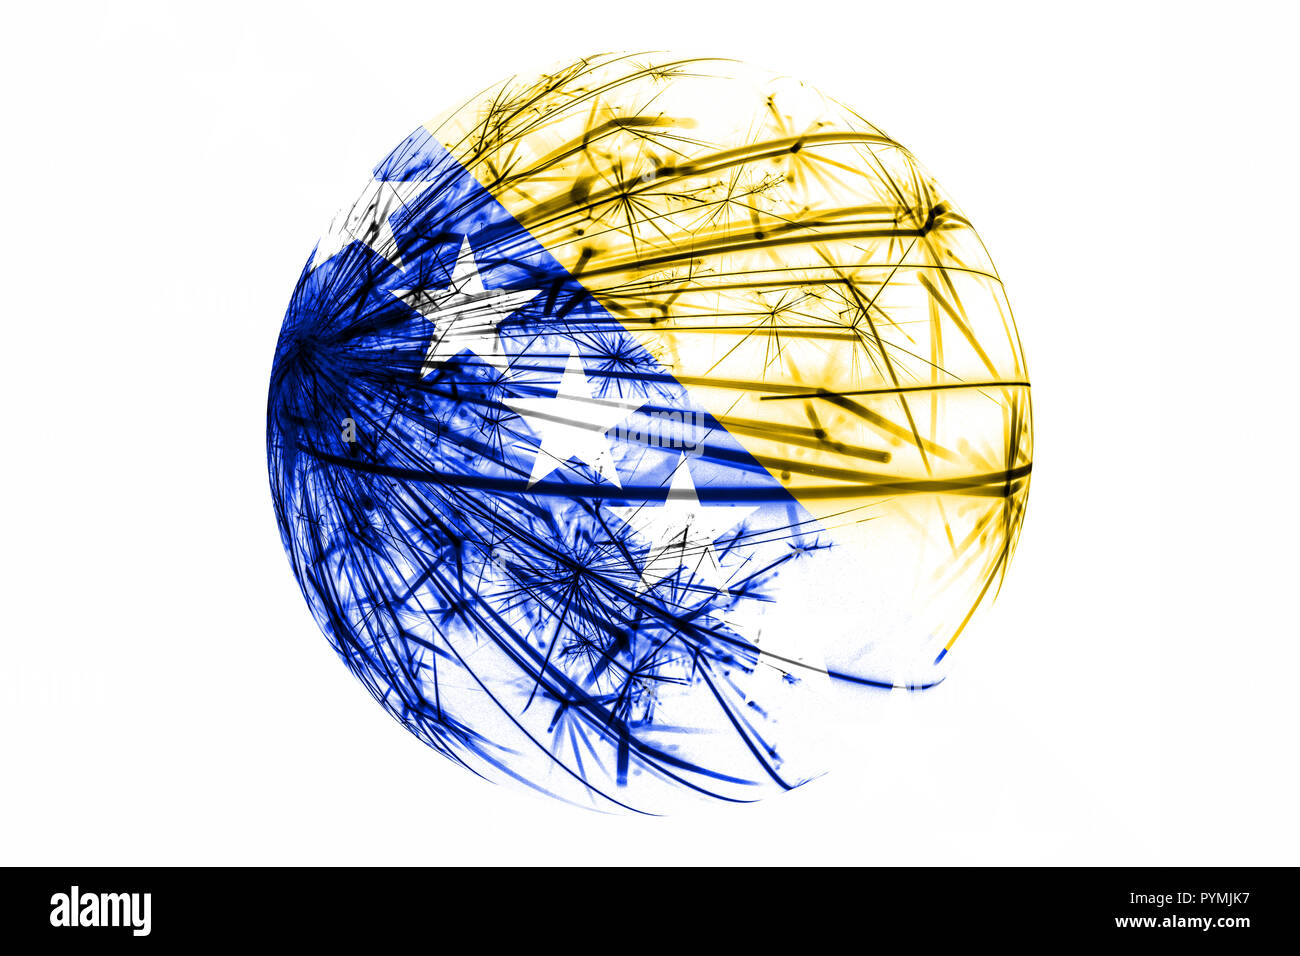 Abstract Bosnia and Herzegovina sparkling flag, Christmas ball concept isolated on white background - Stock Image